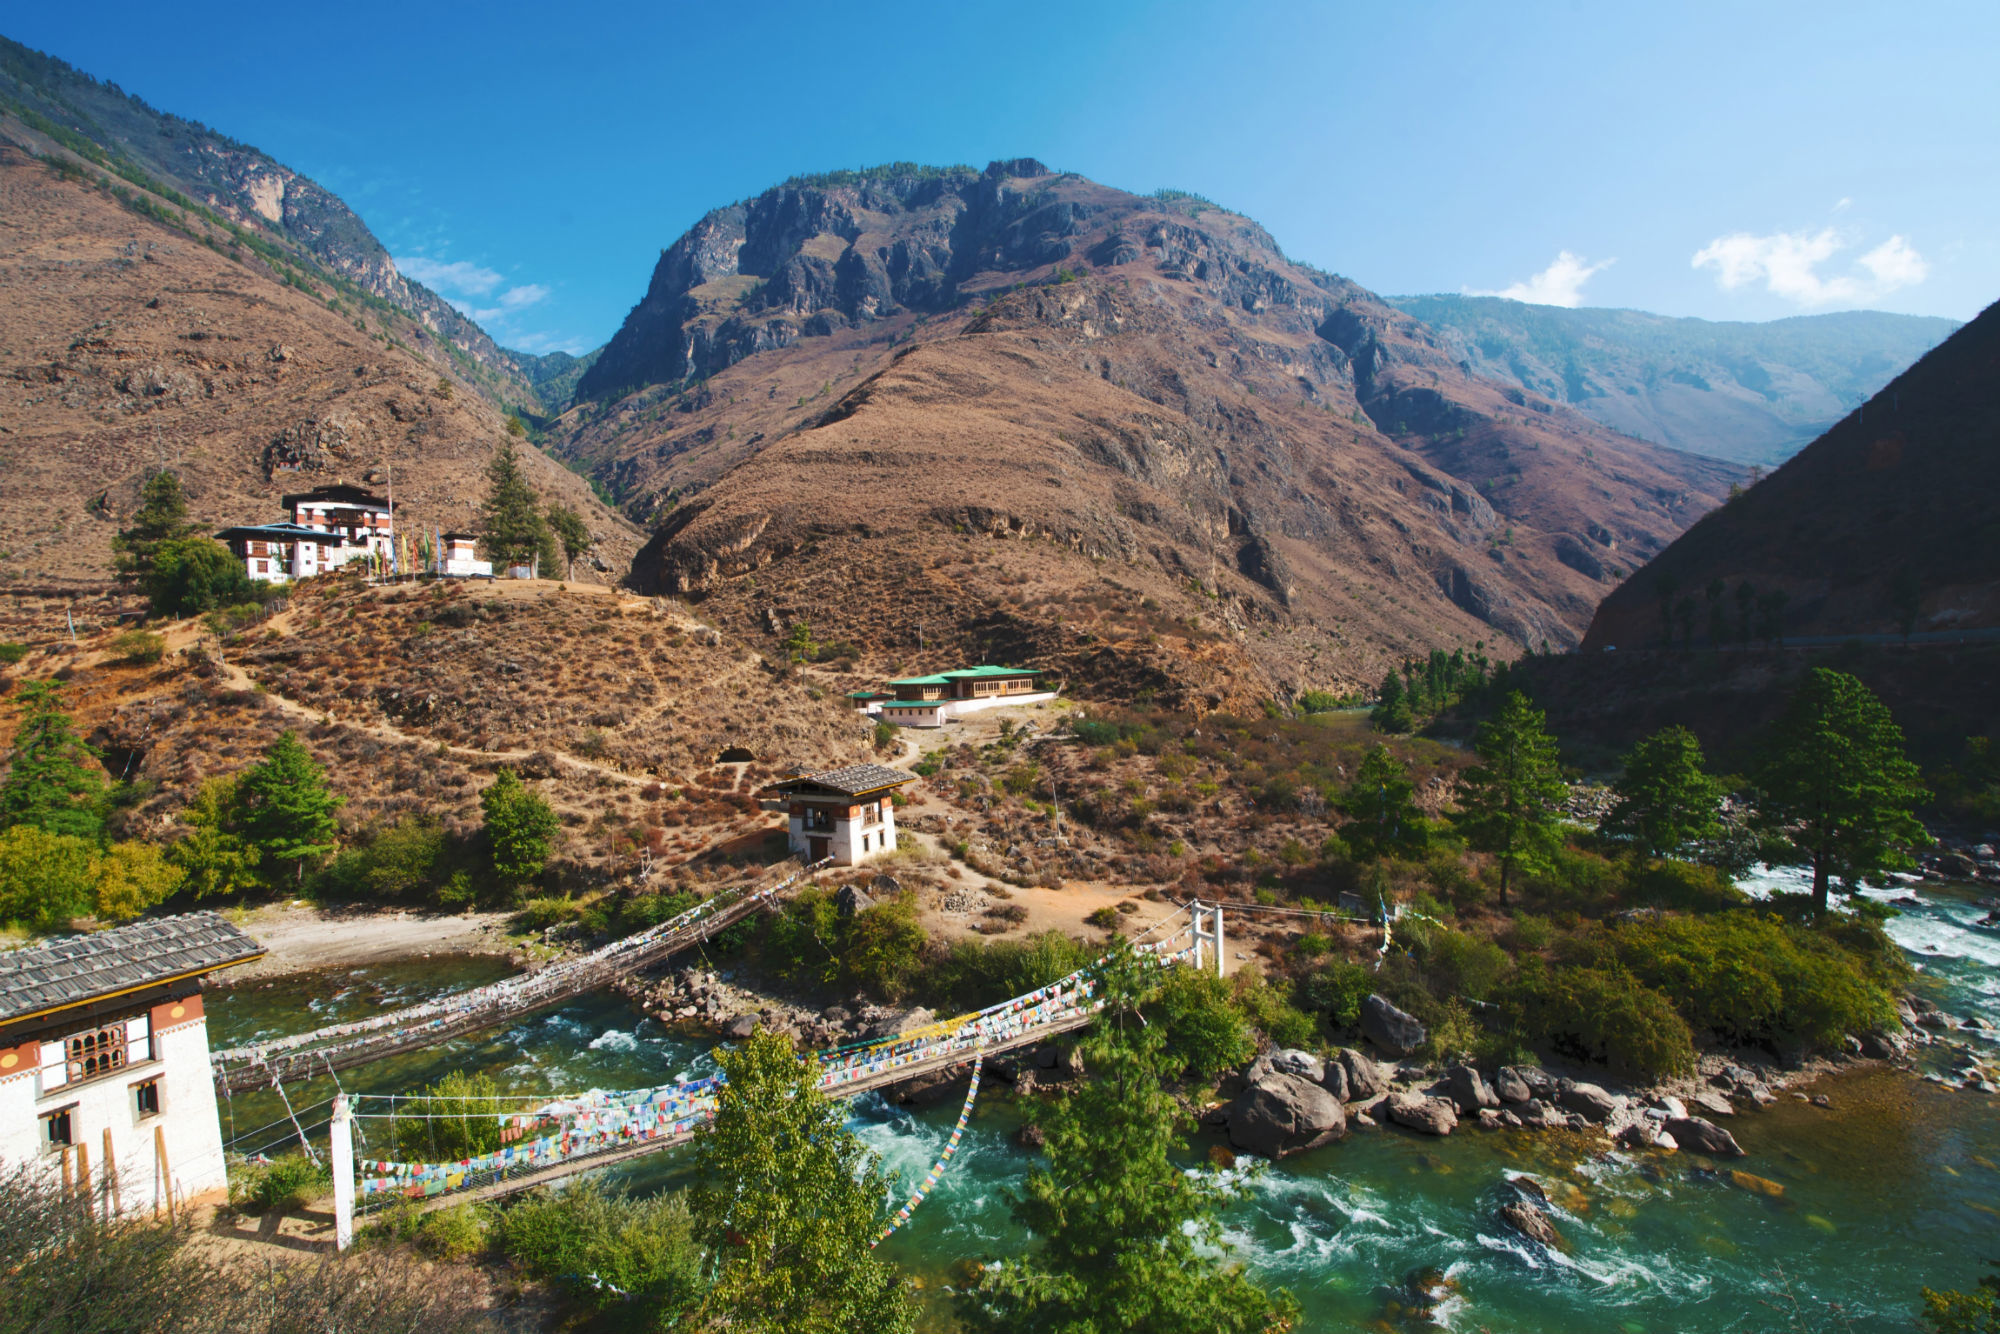 Iron Chain Bridge and Tachog Lhakhang